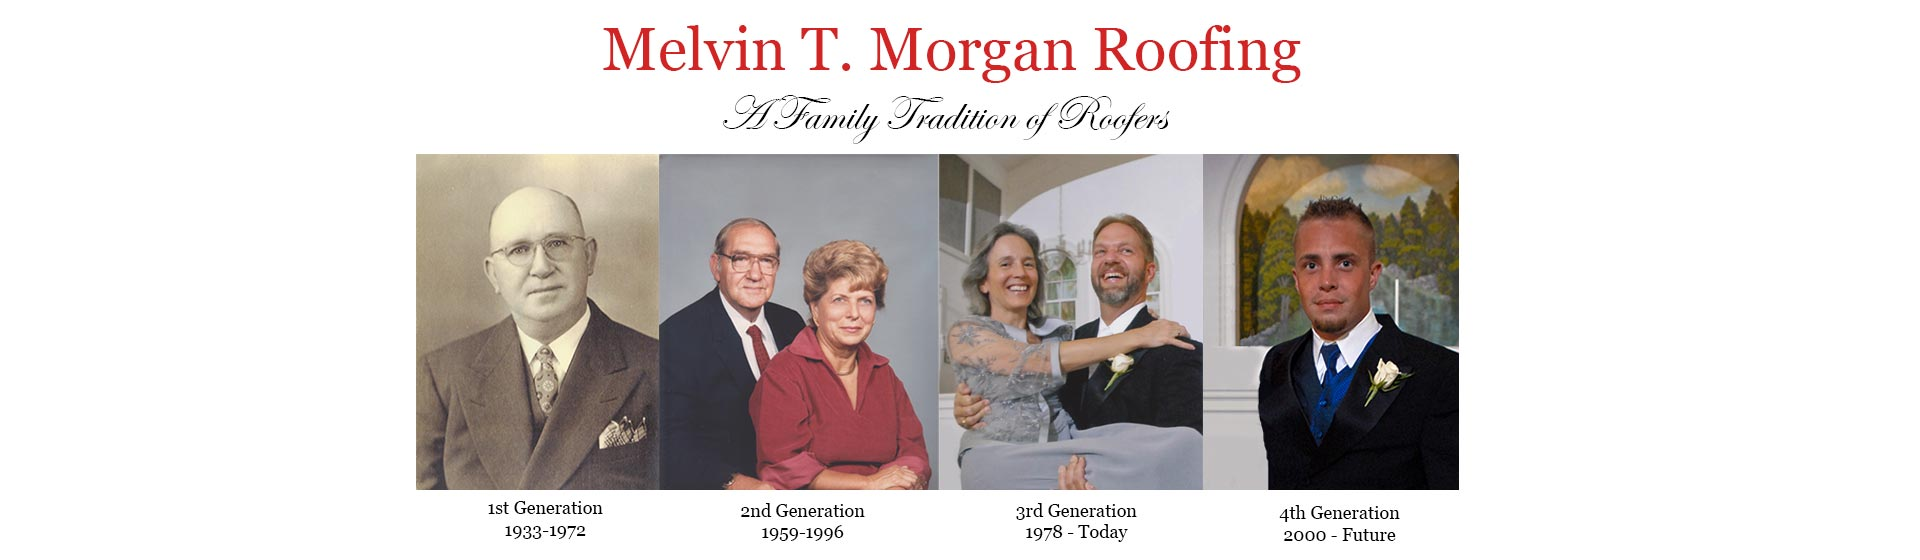 Melvin T Morgan Roofing Family Tradition